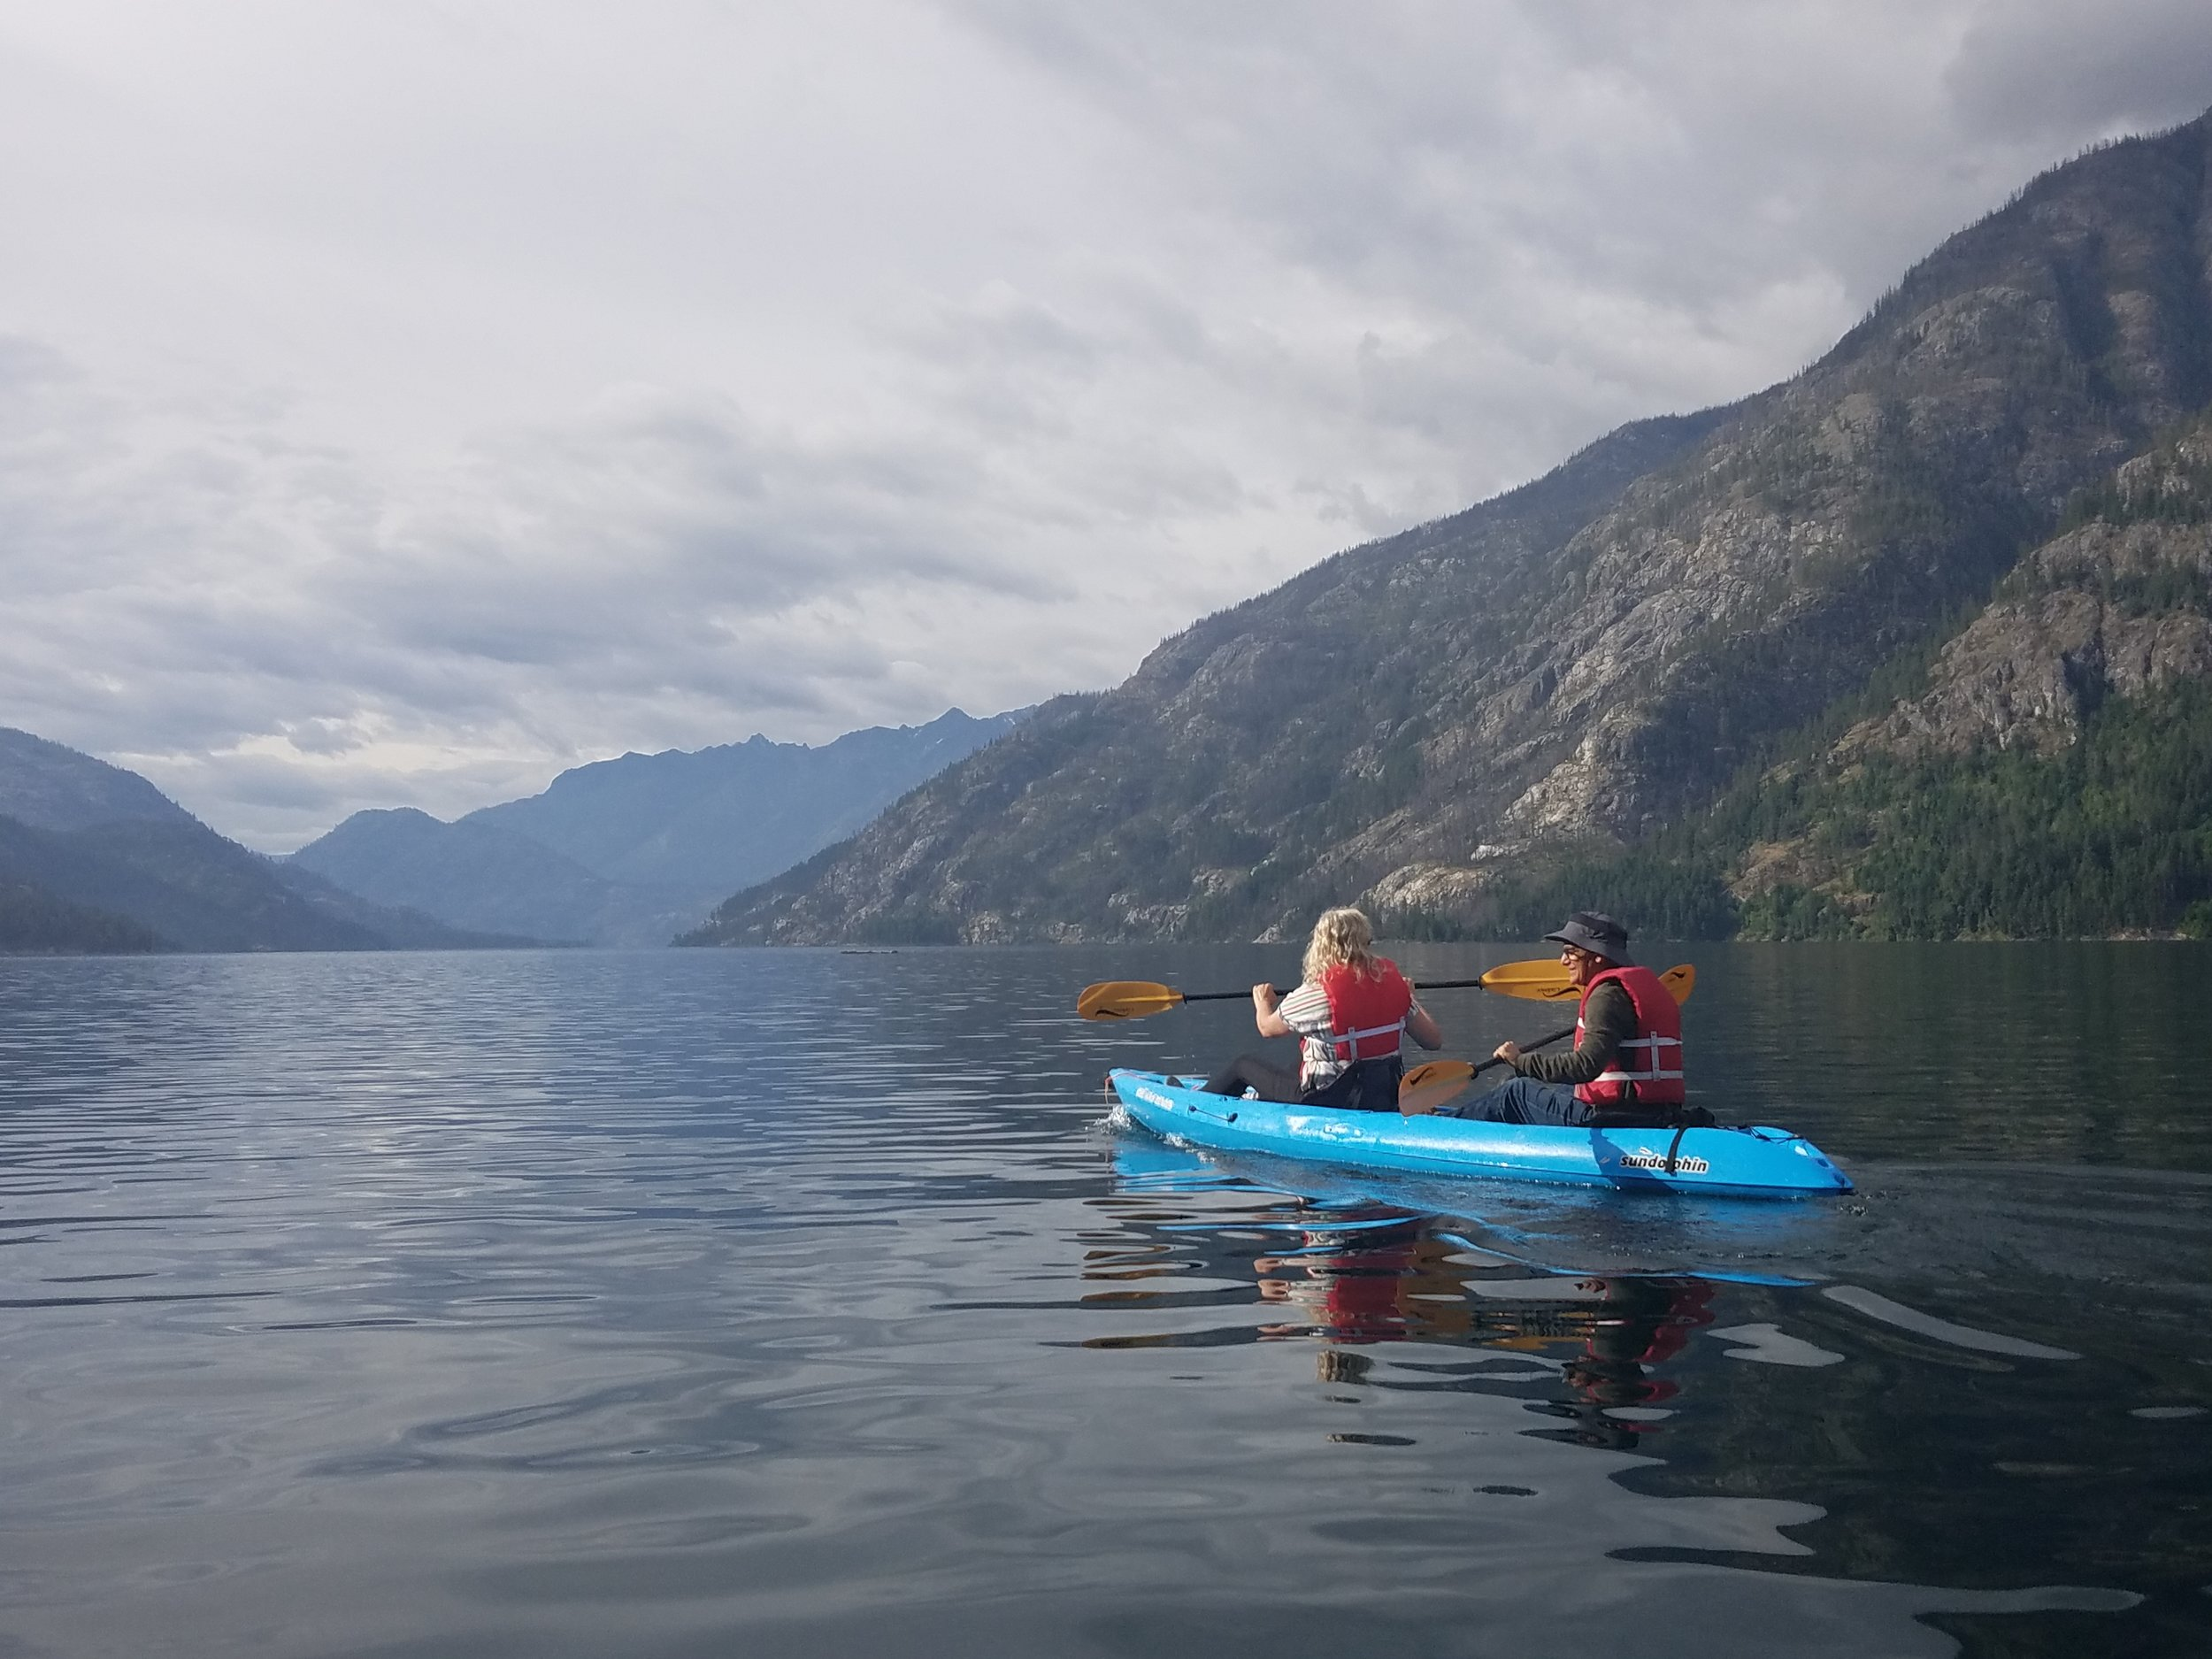 Kayaks rented from the North Cascades Lodge in Stehekin make a great way to explore Lake Chelan but be aware of shifting winds that can make paddling northward a slog. Photo by M.M. Ruth